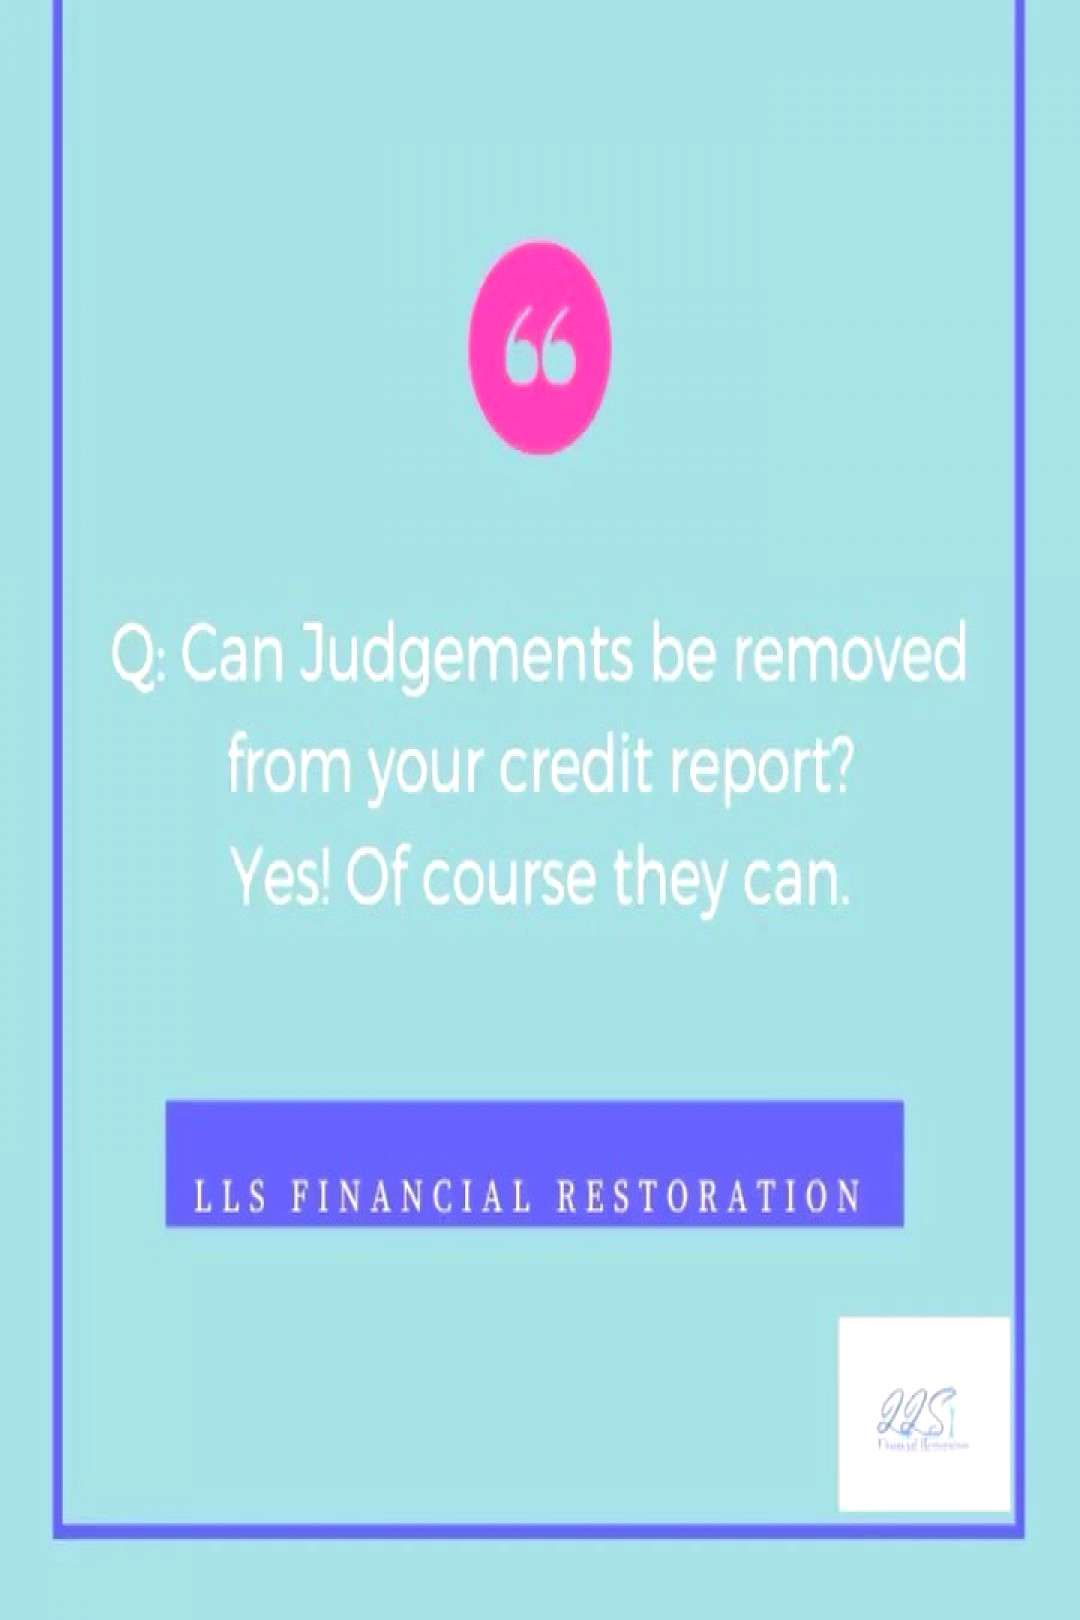 How To Get A Judgement Removed From My Credit Report